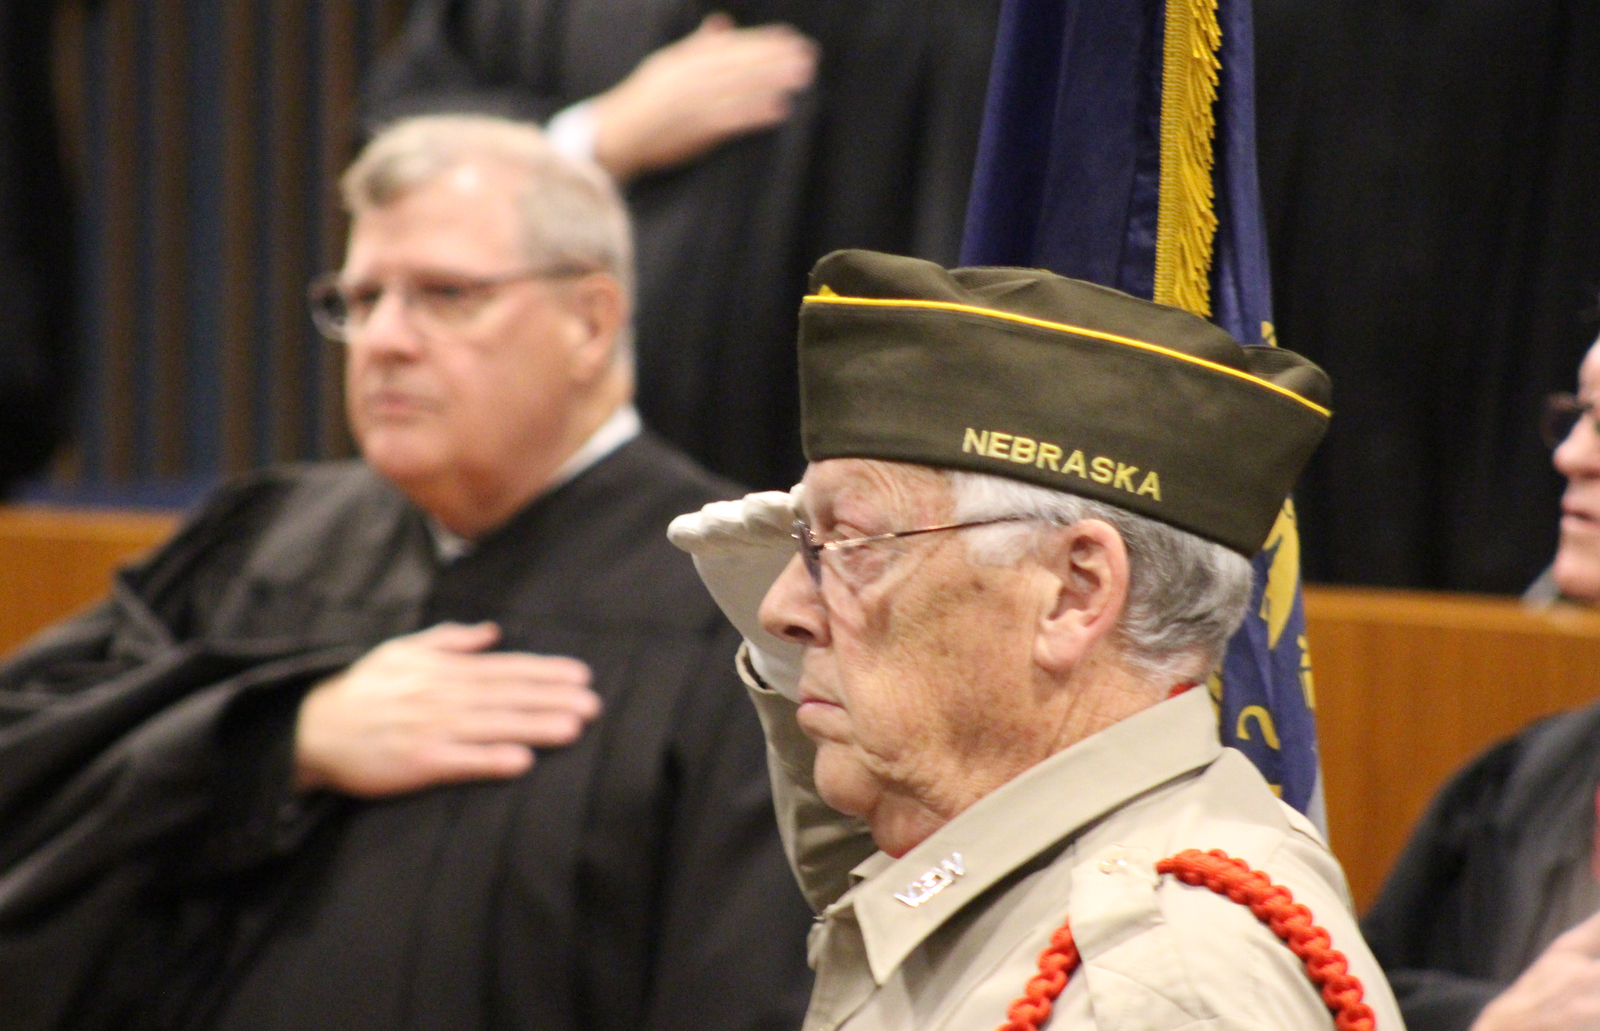 A member of the Benson VFW Post 2503 honor guard salutes the flag during the advancement of the colors at the OBA's annual Memorial Day Program in the legislative chamber of the Omaha-Douglas Civic Center on May 10, 2019. (Photo by Scott Stewart)